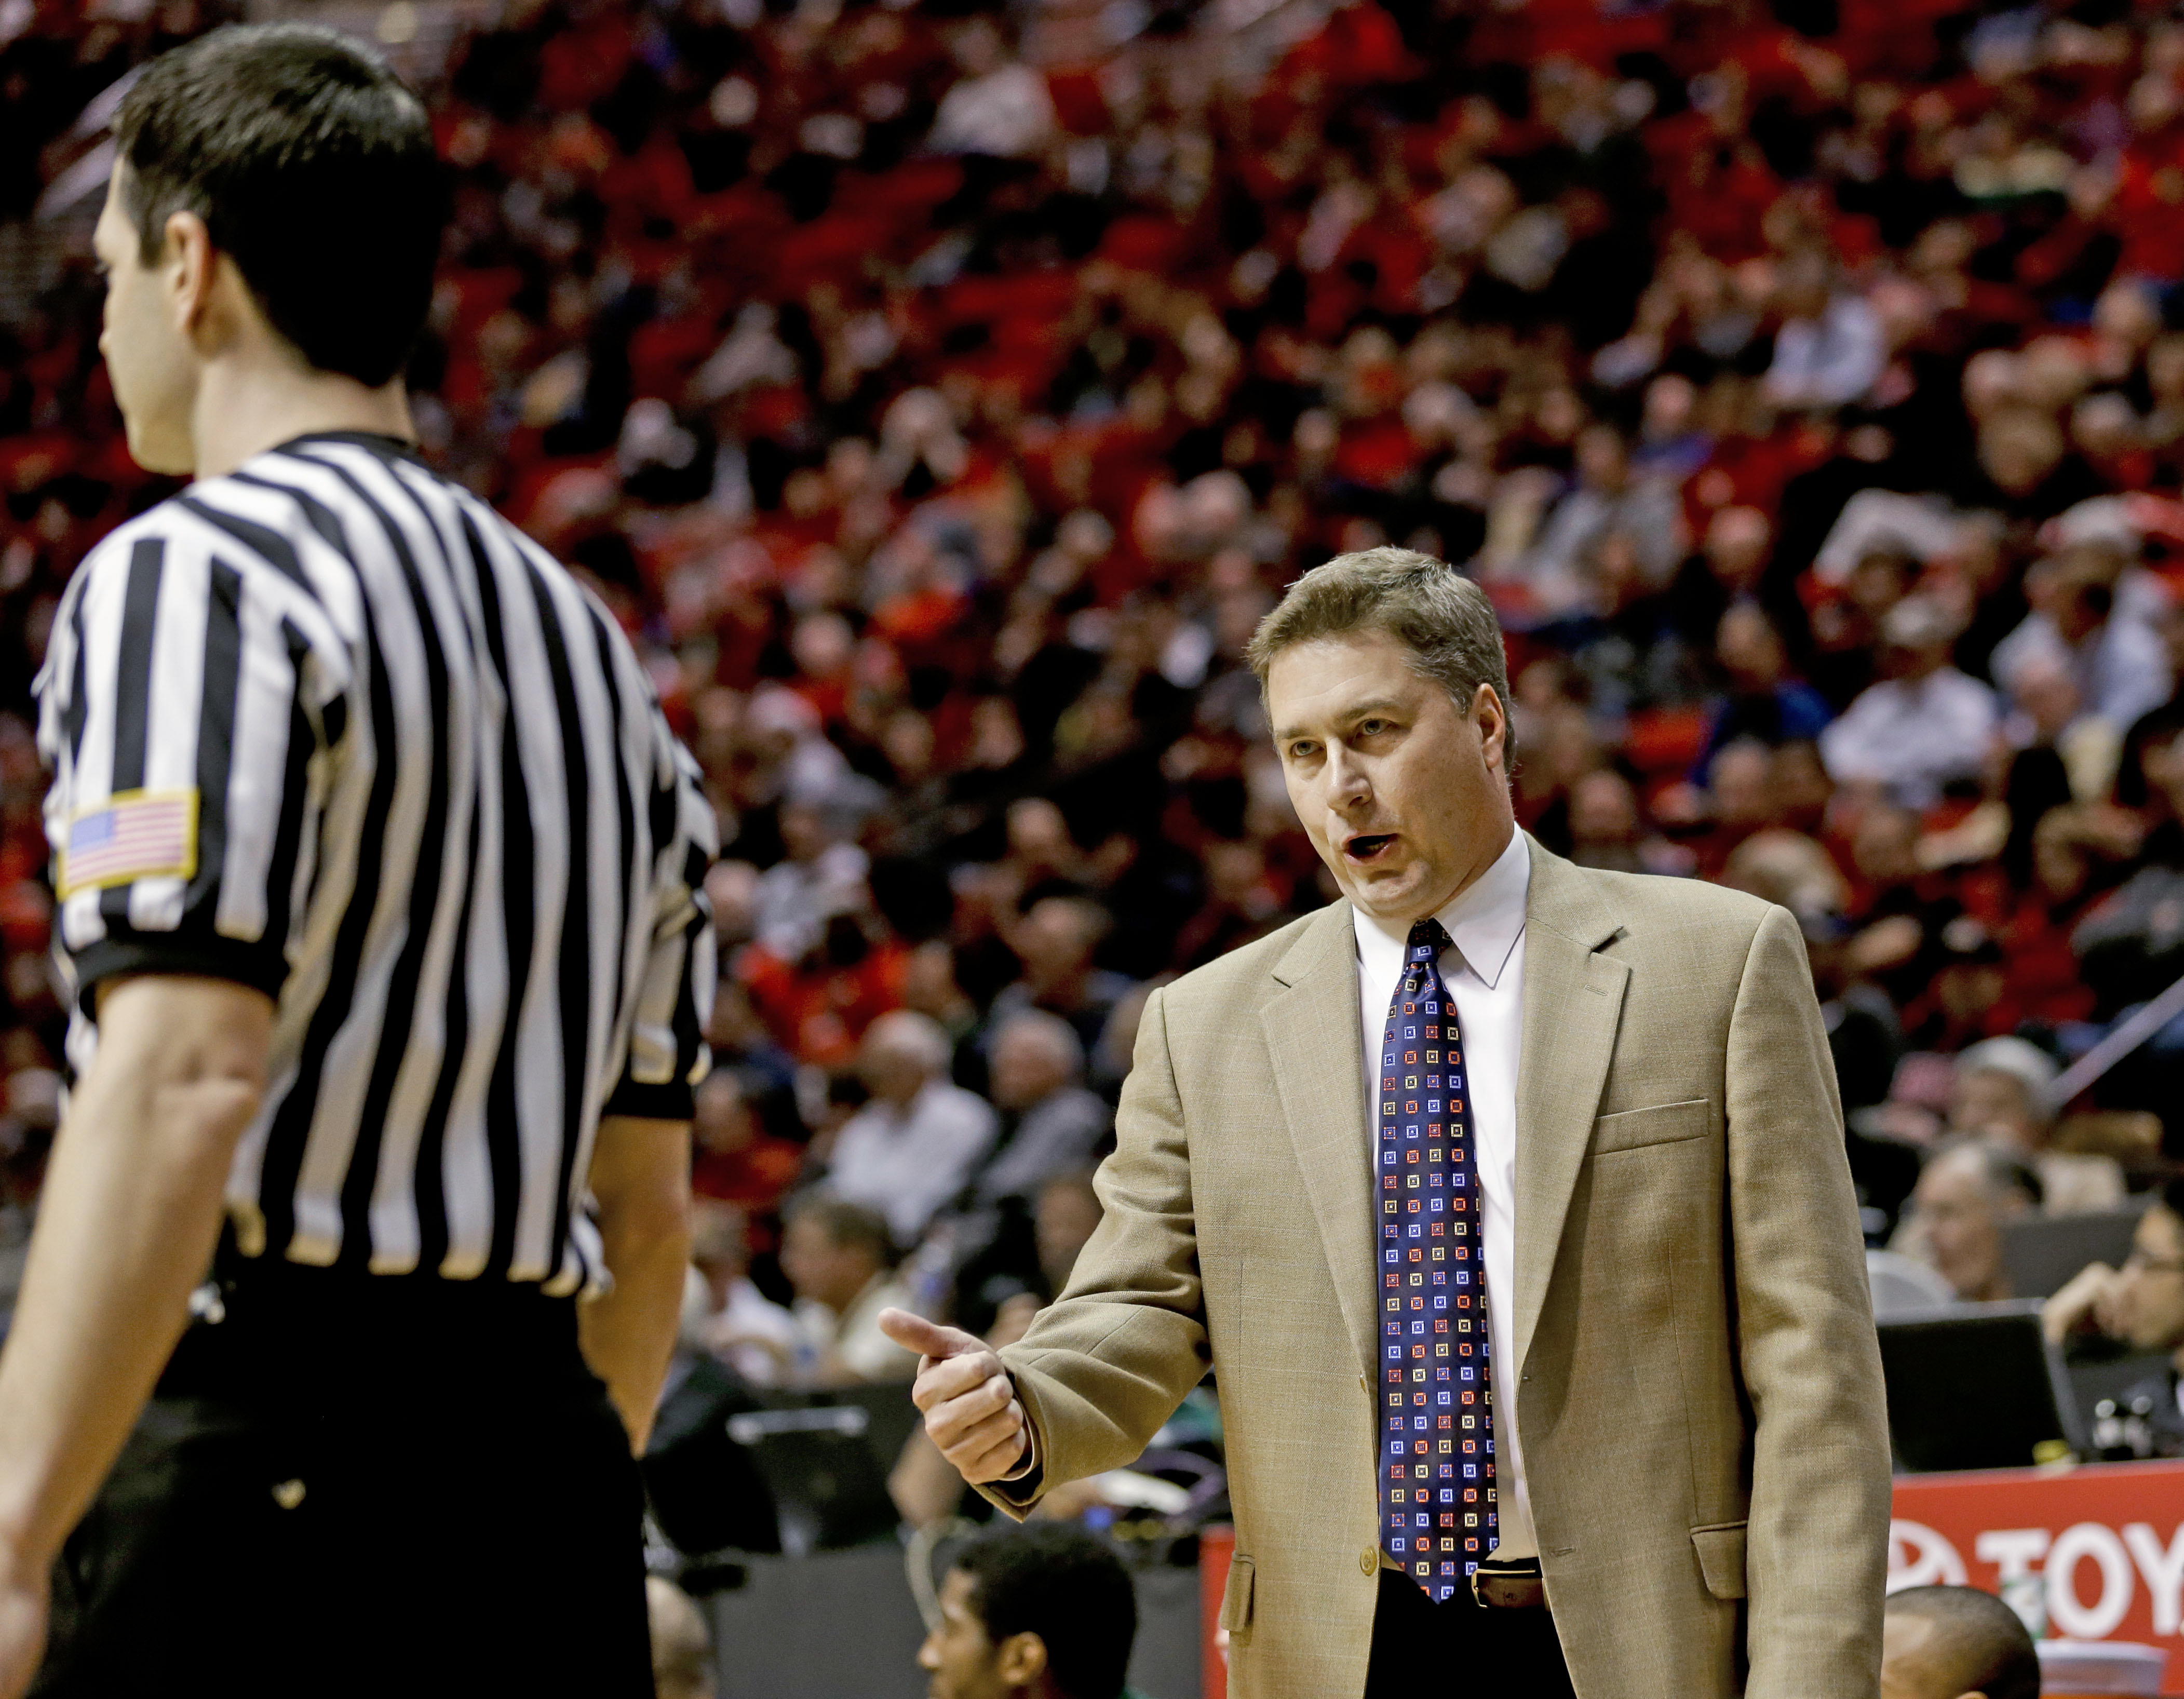 Point Loma Nazarene coach Bill Carr has words for an official being assessed a technical foul during the first half of an NCAA college basketball game against San Diego State on Tuesday, Dec. 18, 2012, in San Diego. (AP Photo/Lenny Ignelzi)